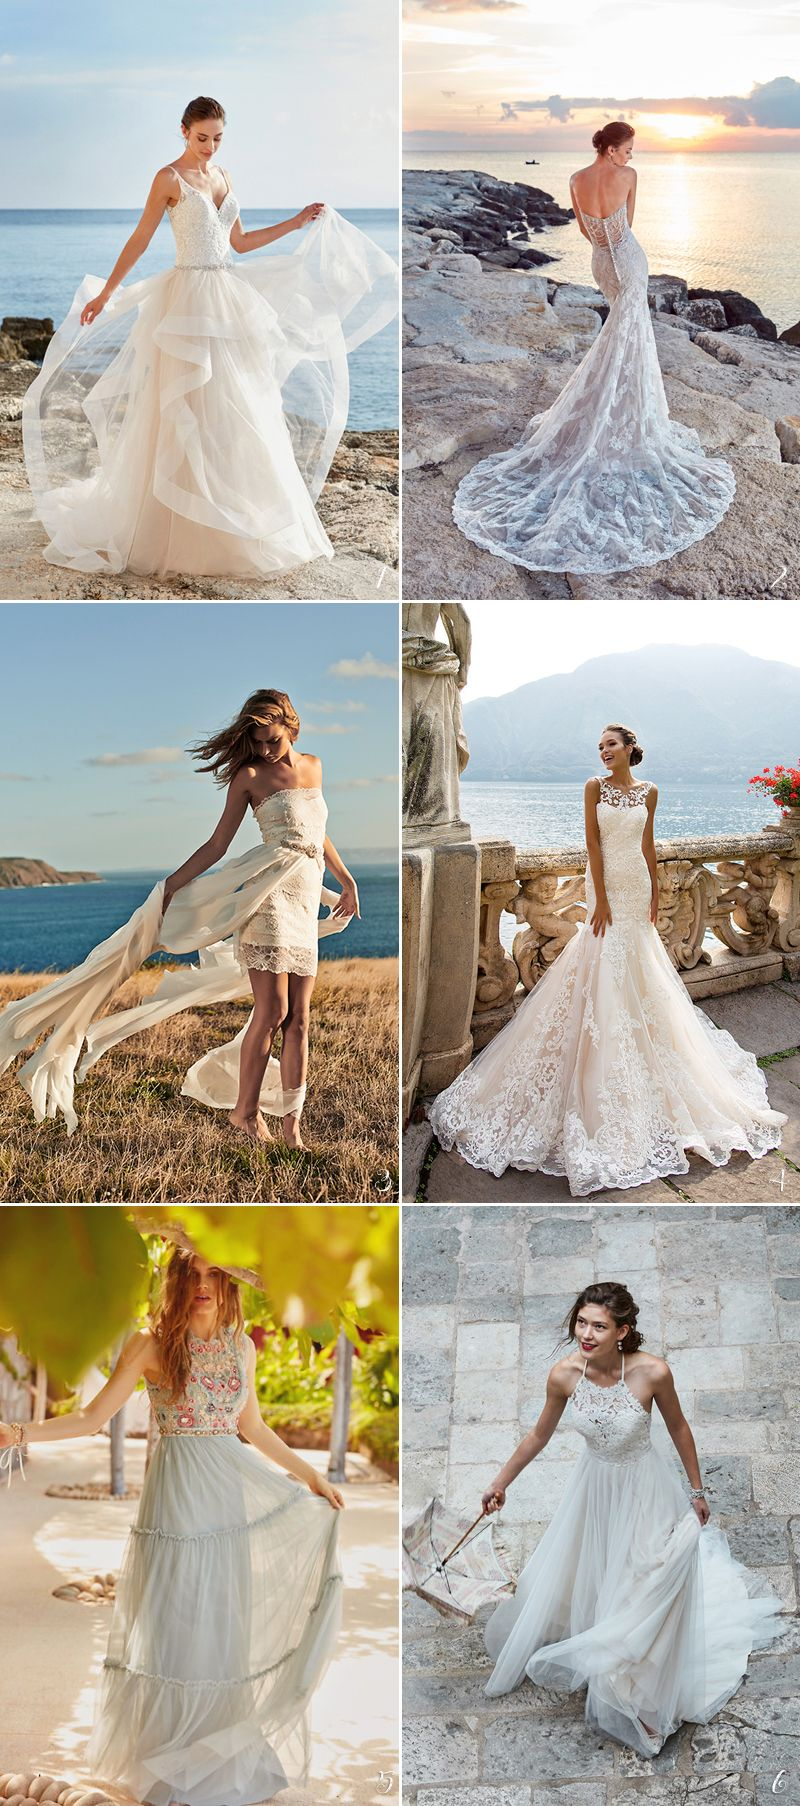 30 Perfect Gowns For Every Type Of Outdoor Wedding This Summer Praise Wedding Summer Wedding Gowns Summer Wedding Dress Summer Wedding Outdoor [ 1806 x 800 Pixel ]